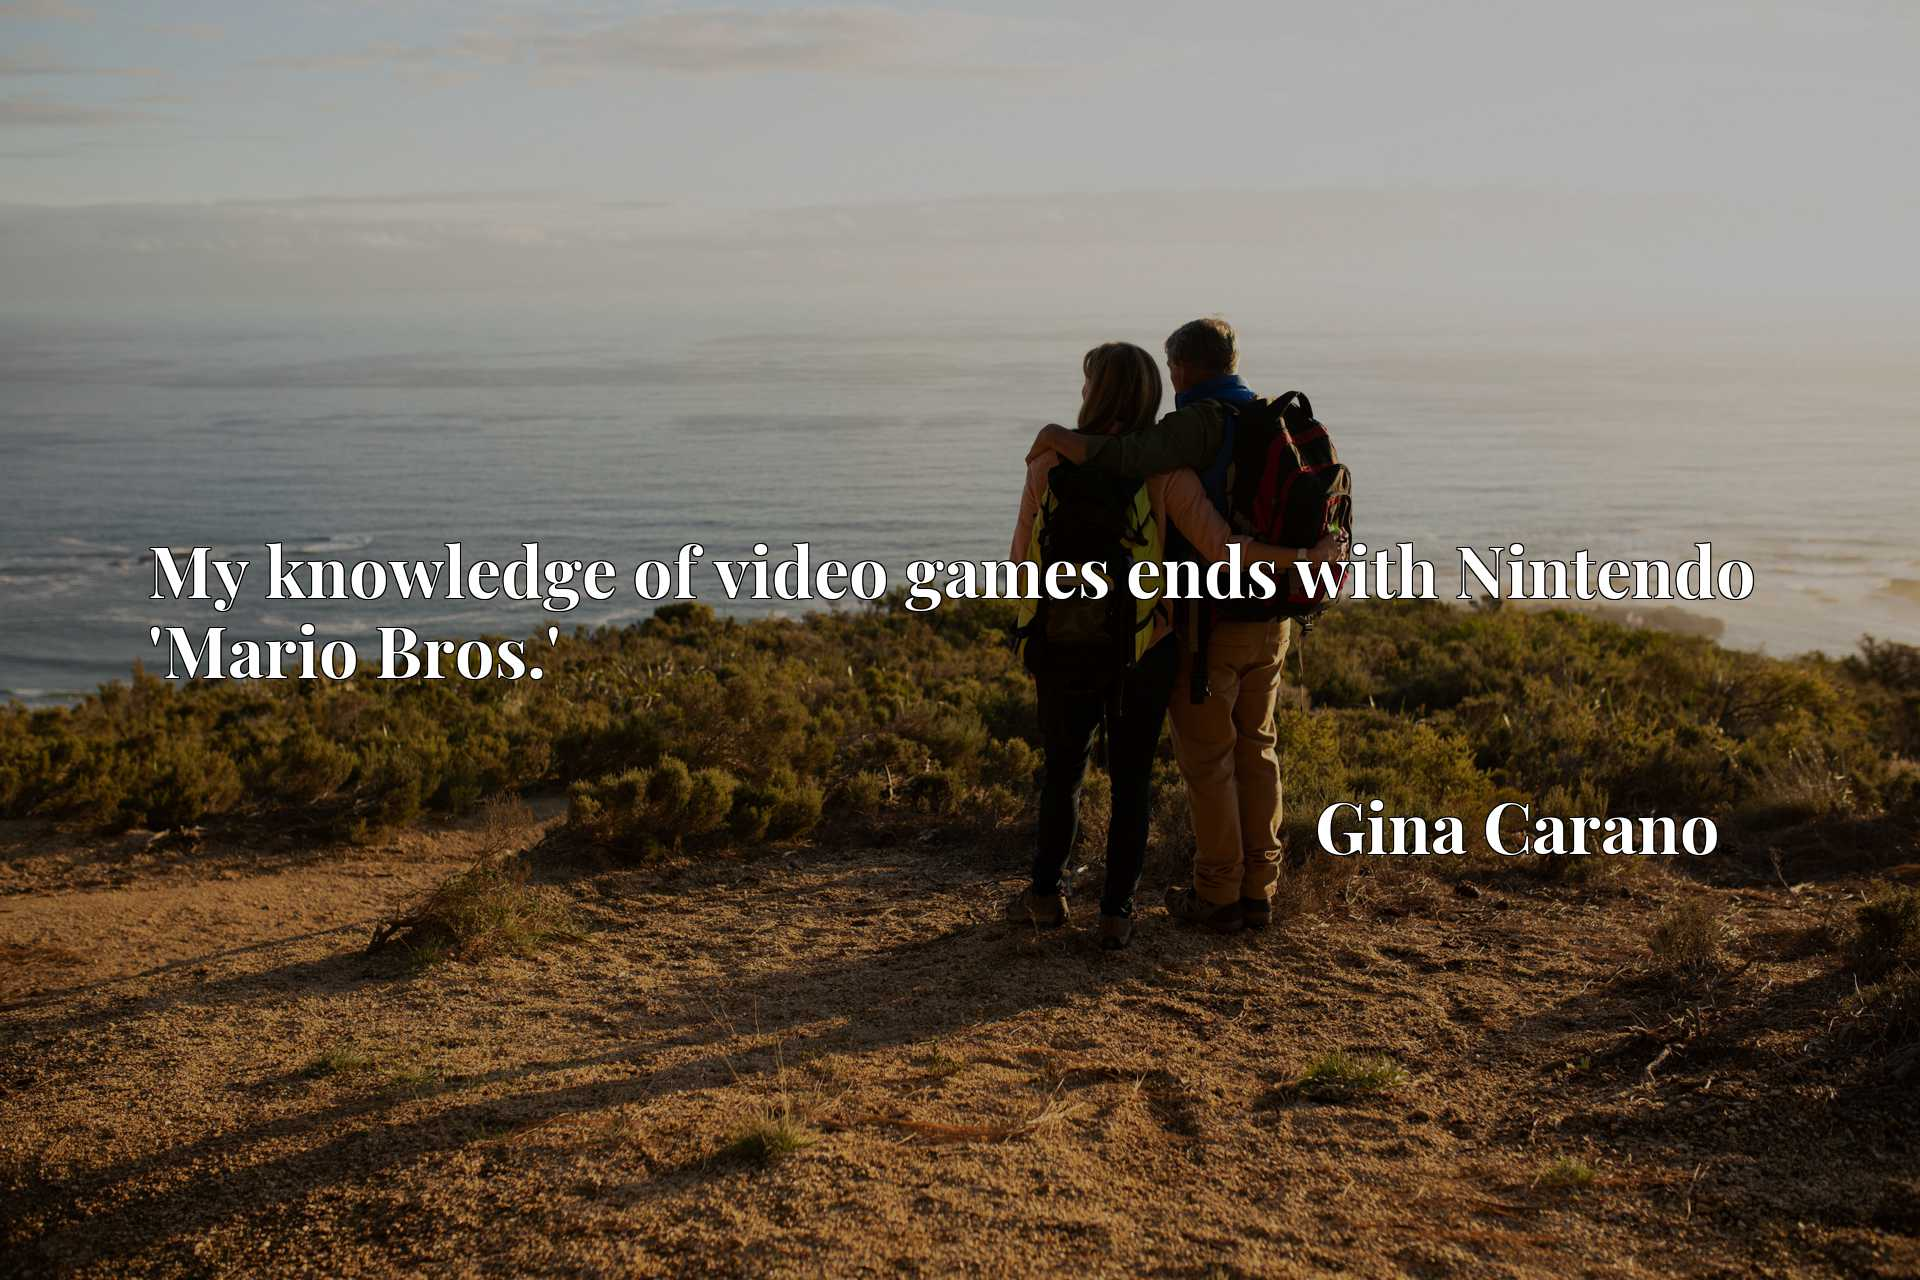 Quote Picture :My knowledge of video games ends with Nintendo 'Mario Bros.'